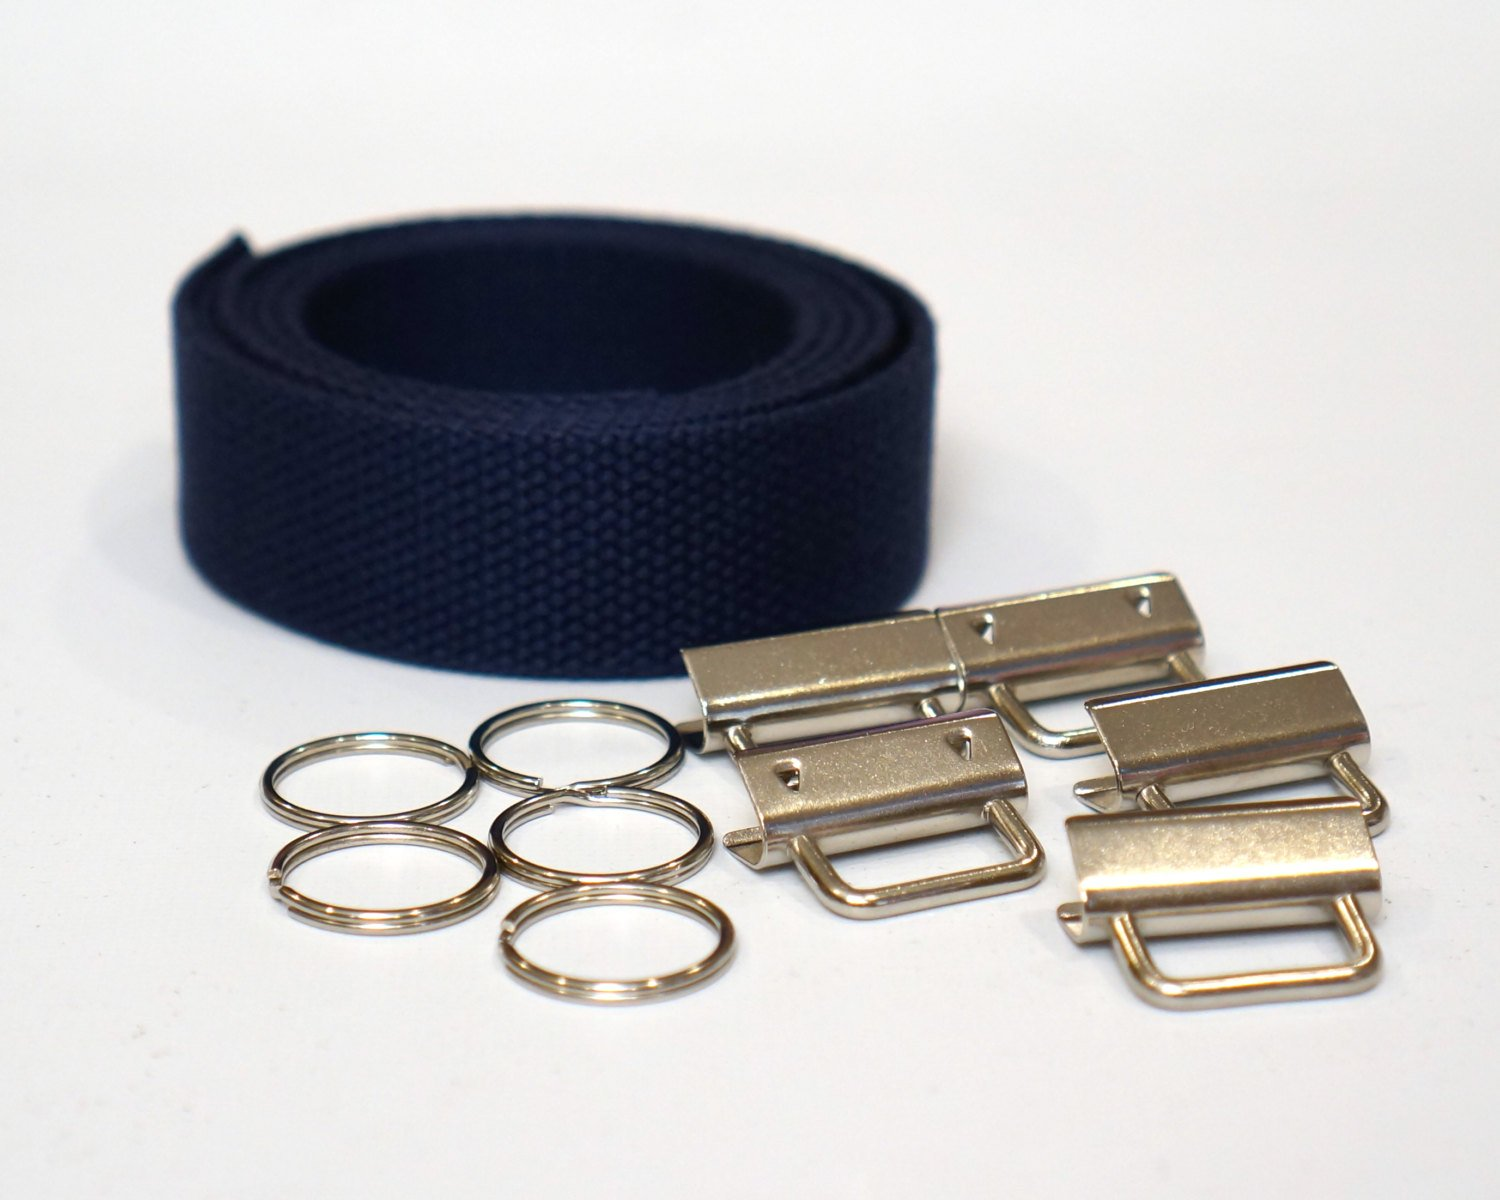 Navy Wristlet Key Fob Kit - 5 Sets